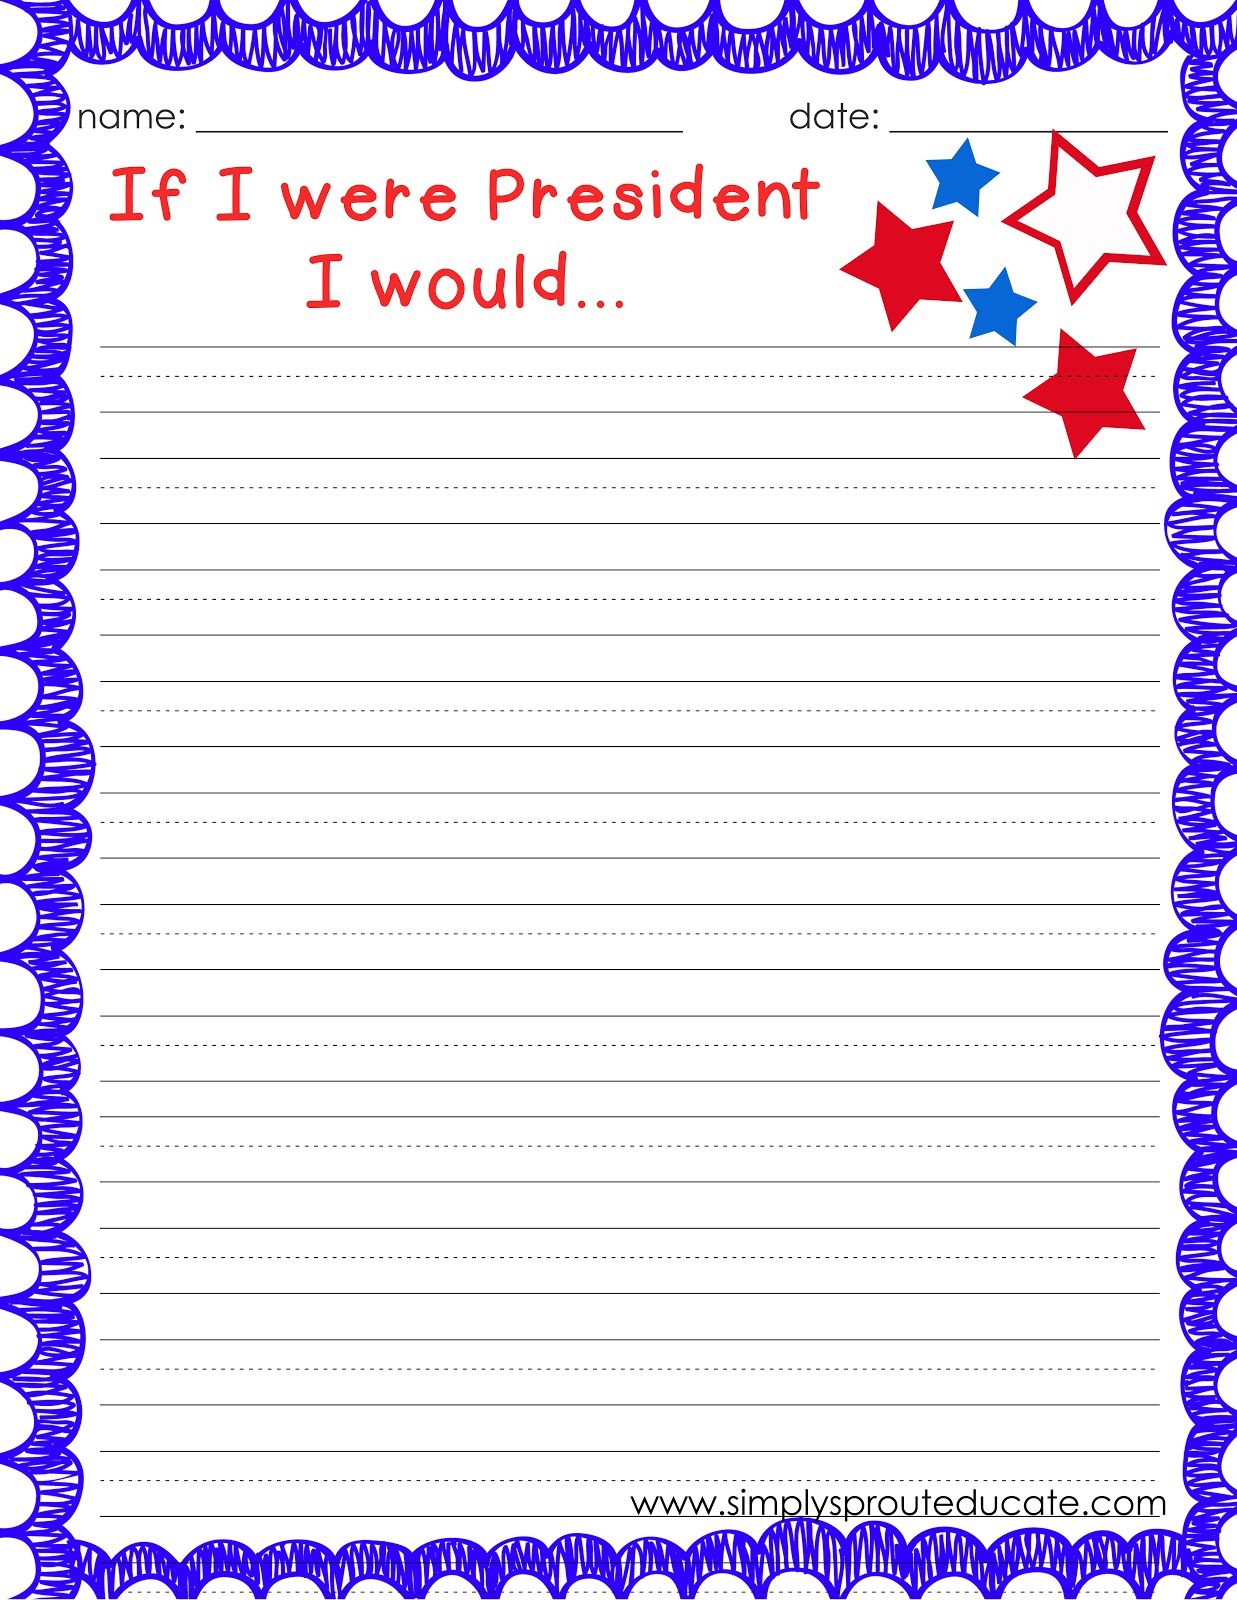 if i were president essay contest pbs election white privilege  i were president essay contest if i were president essay contest